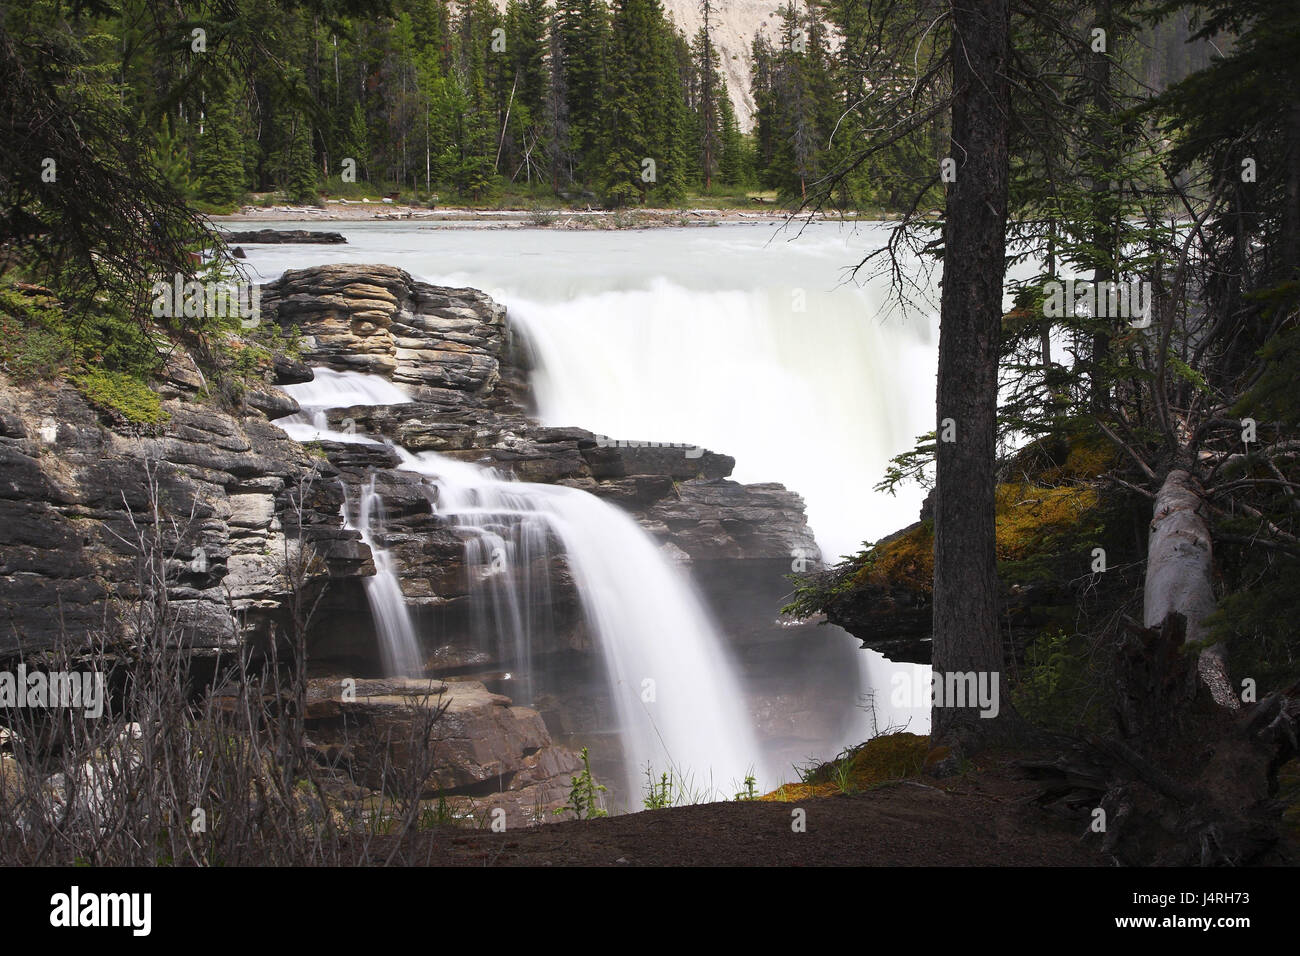 Flux, waterfall, long time exposure, gulch, wooded, Canada, province, Alberta, Jasper National Park, Rocky Mountains, - Stock Image